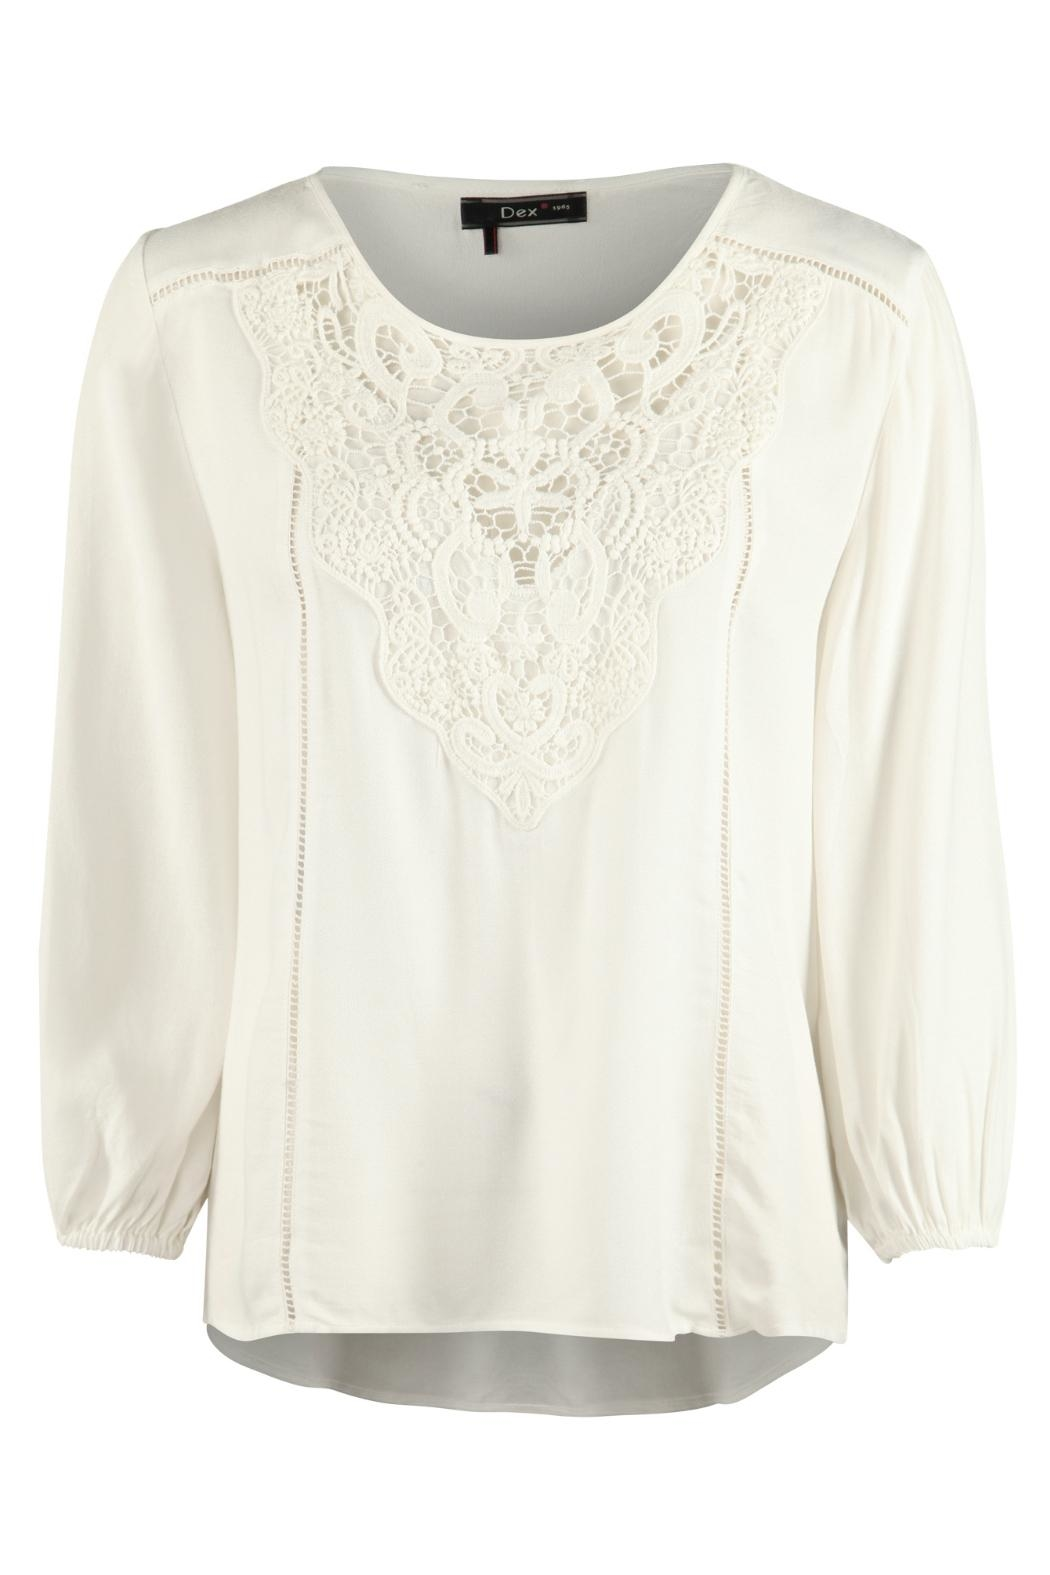 a605ff03a2e Dex Crochet Bib Blouse from New Jersey by Ocean Grove Trading Co ...